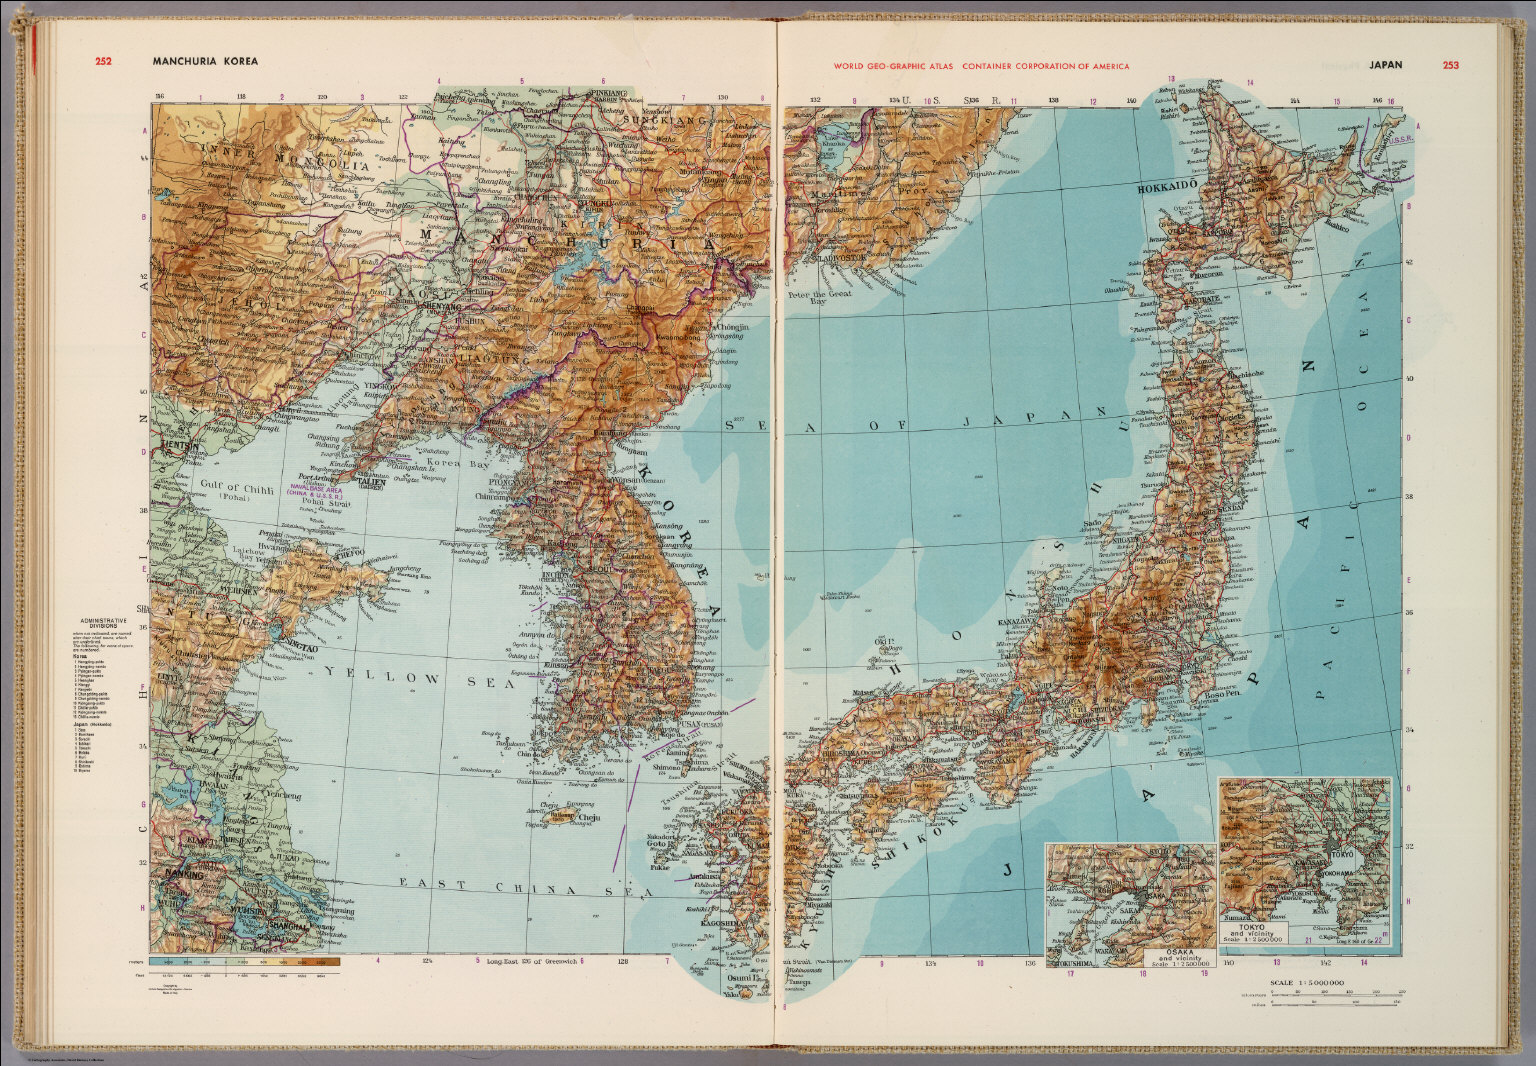 Manchuria Korea Japan David Rumsey Historical Map Collection